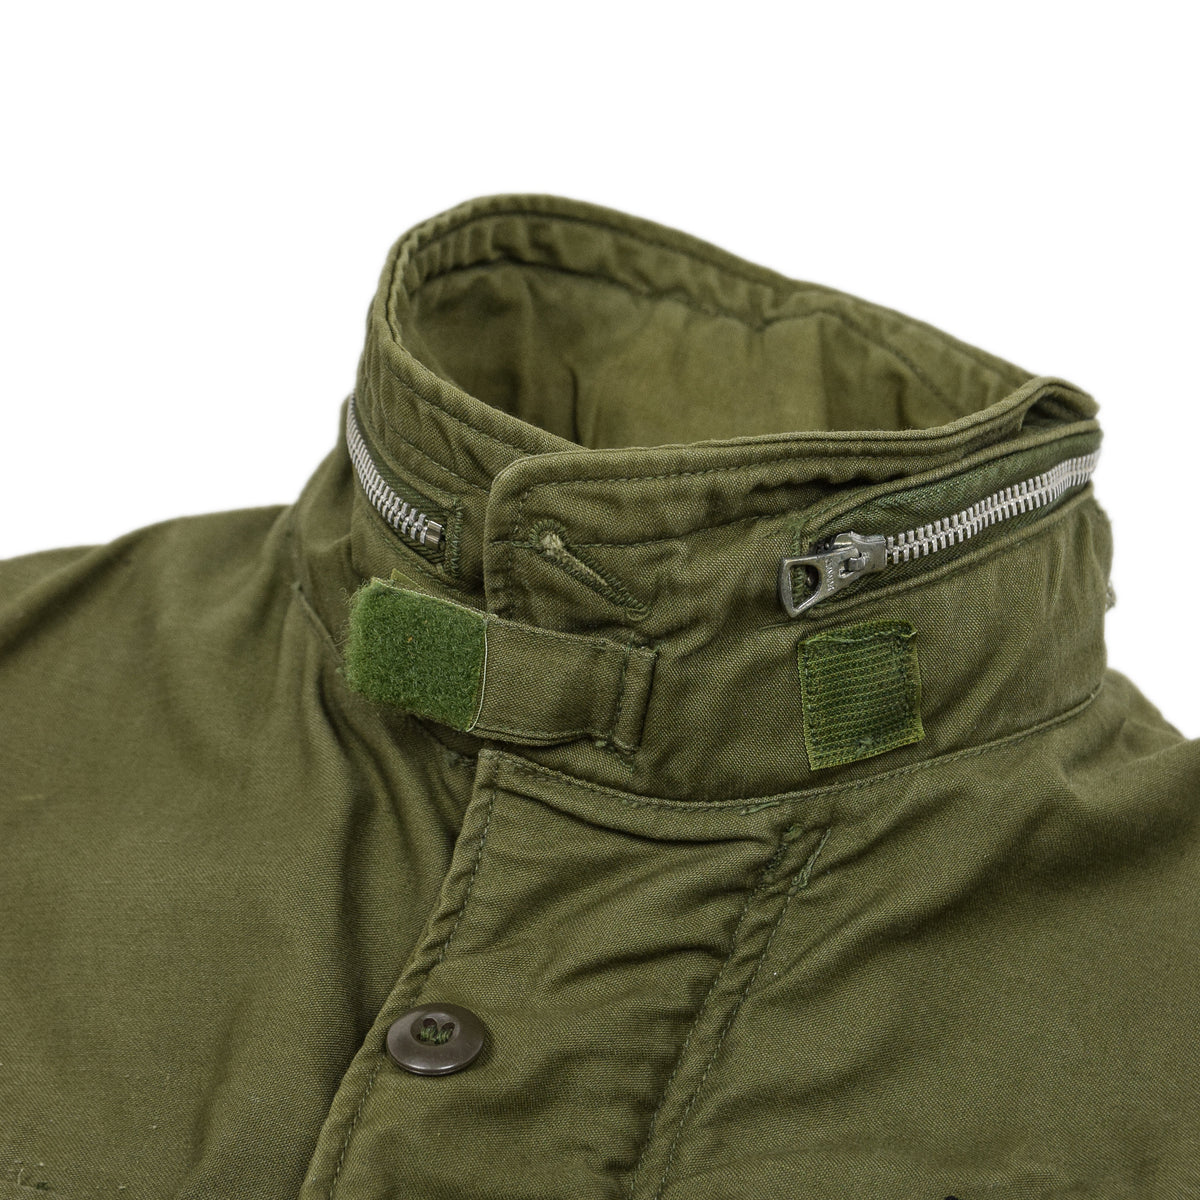 Vintage 60s Vietnam M-65 Man's Field Sateen 0G-107 Green US Army Coat S / M collar fastening